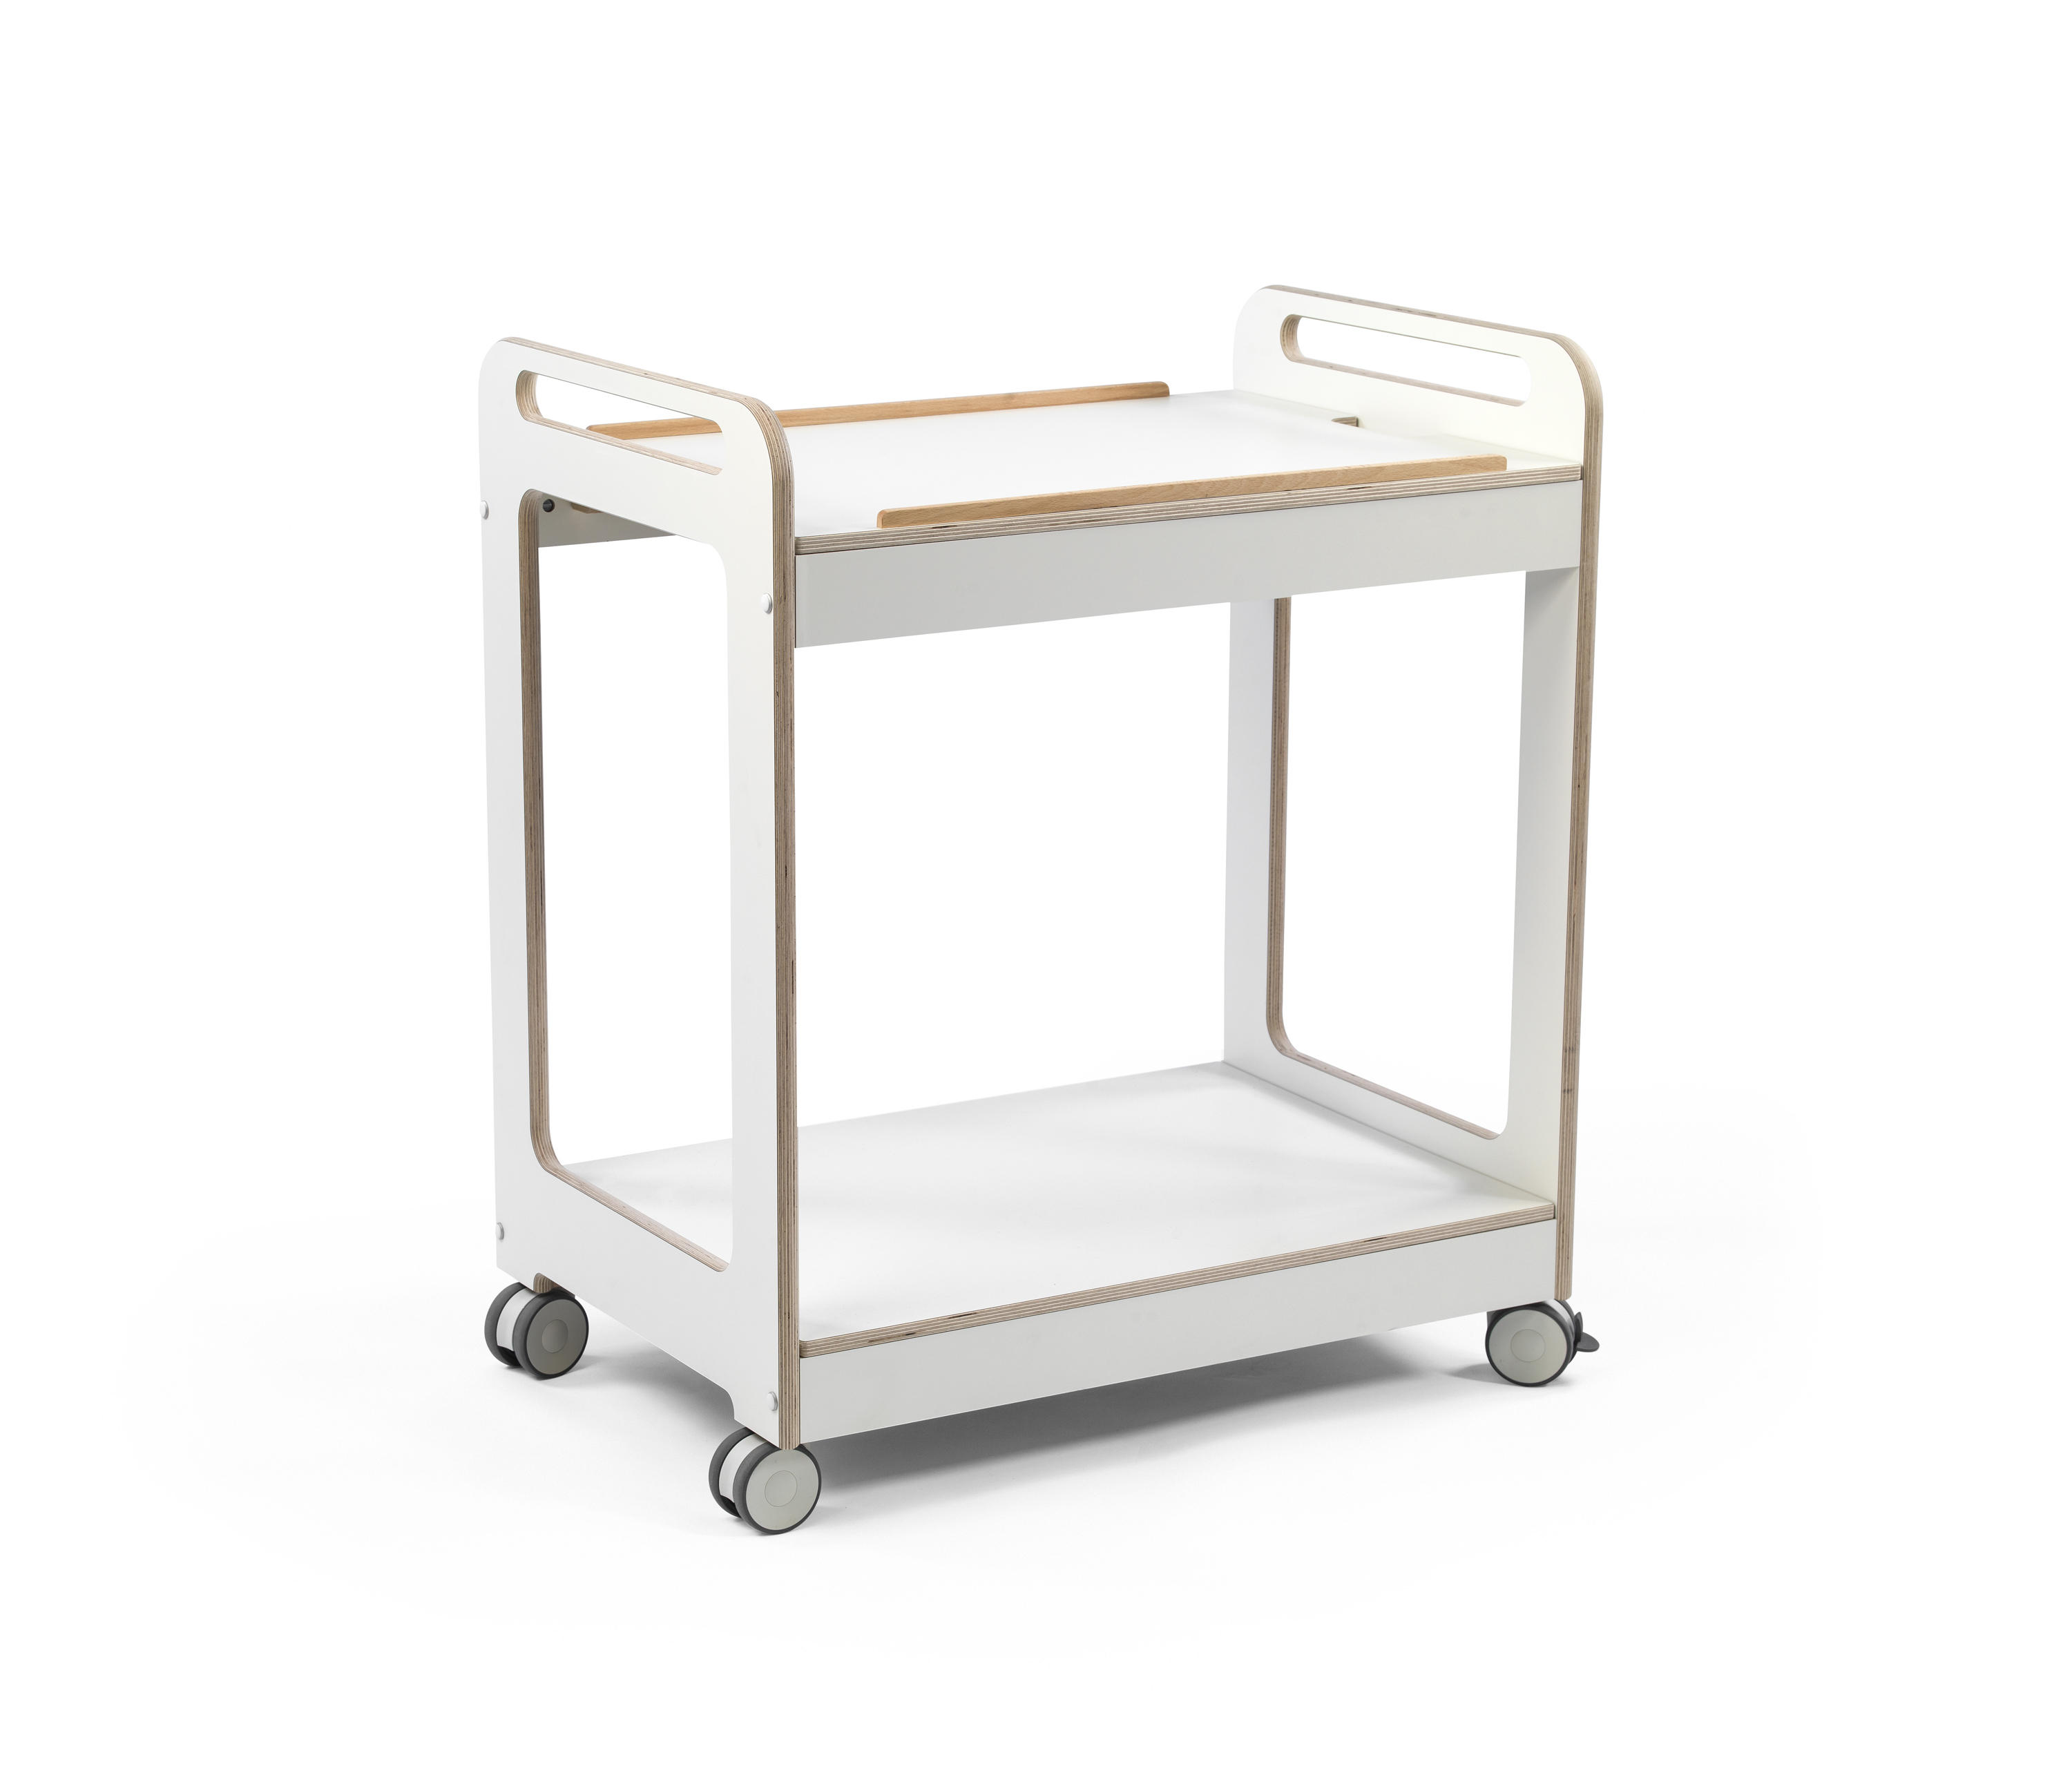 Ordinaire ... HM280 Trolley Table By Helland | Trolleys ...